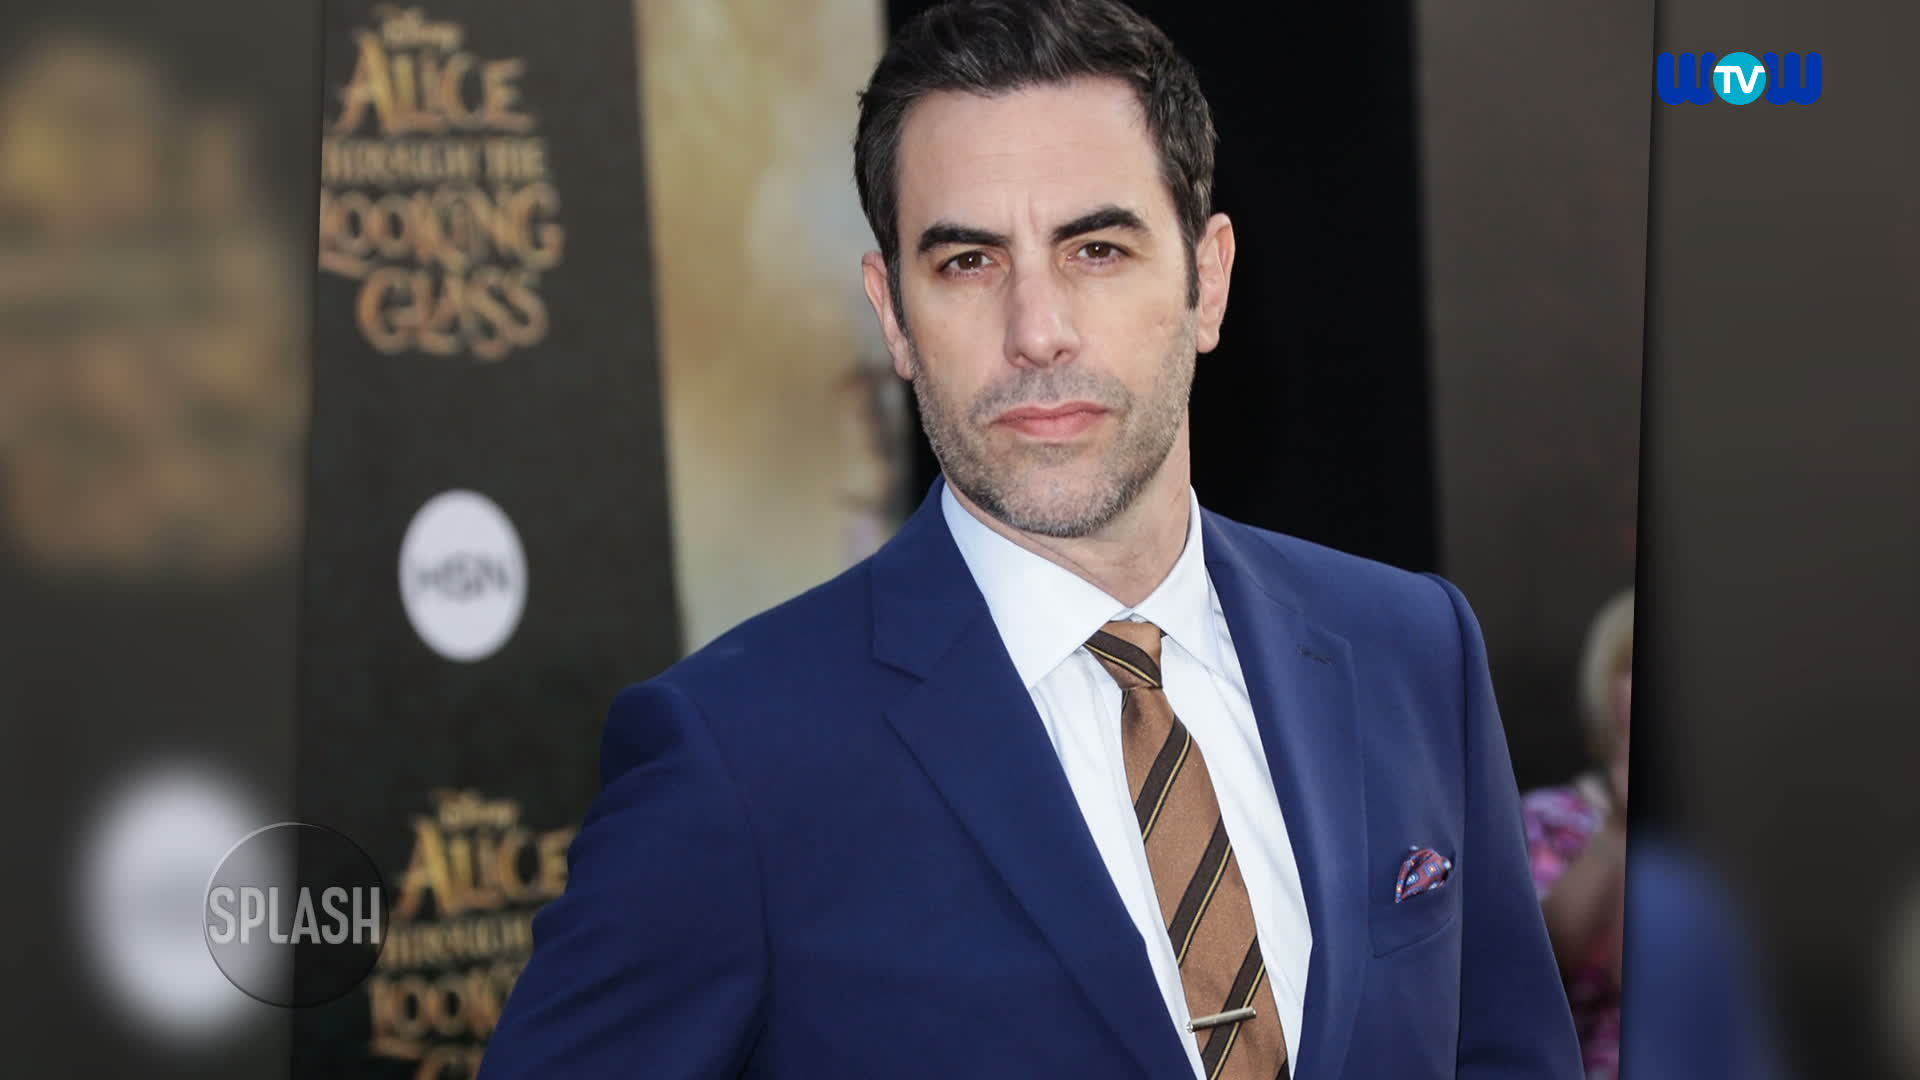 Wowtv Sacha Baron Cohen Offers To Pay Fines For Arrested Mankini Borat Impersonators